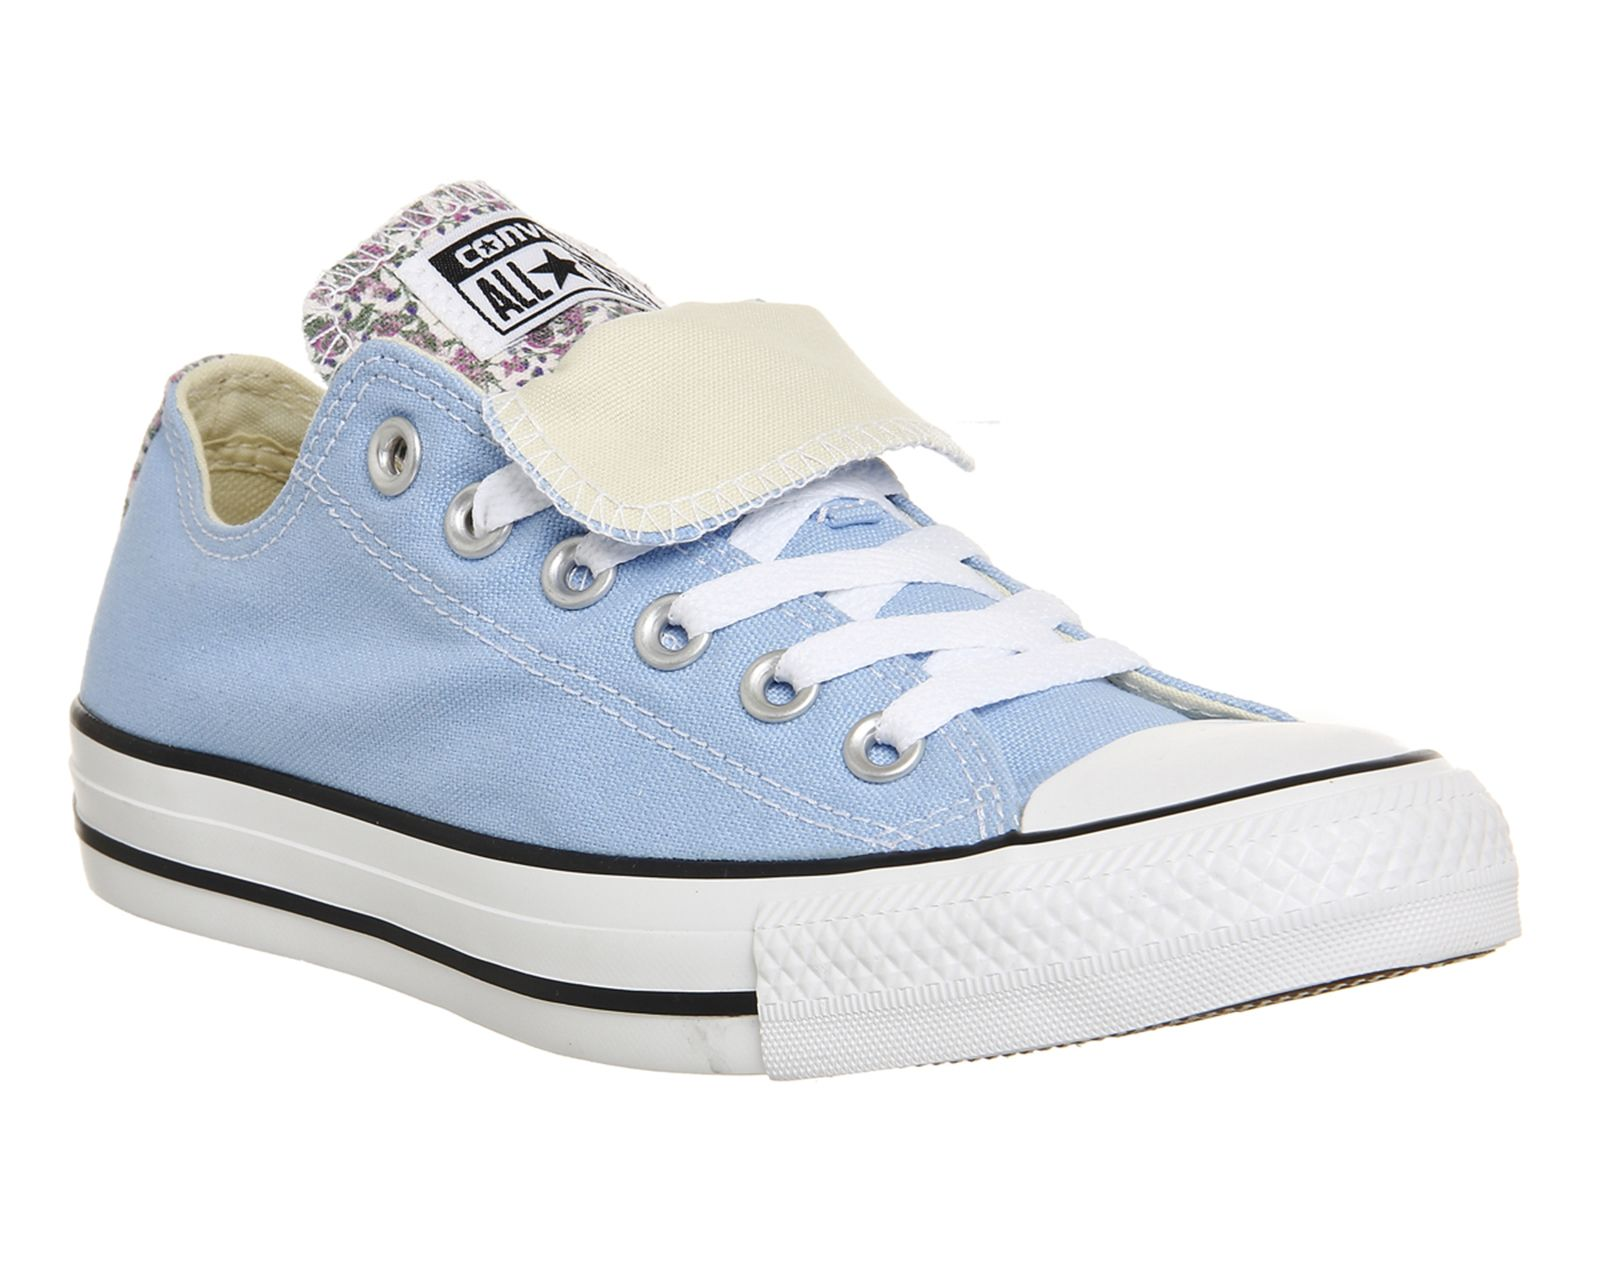 Buy Blue Sky Mini Rose Converse Allstar Low Double Tongue from OFFICE.co.uk. 89c7af007